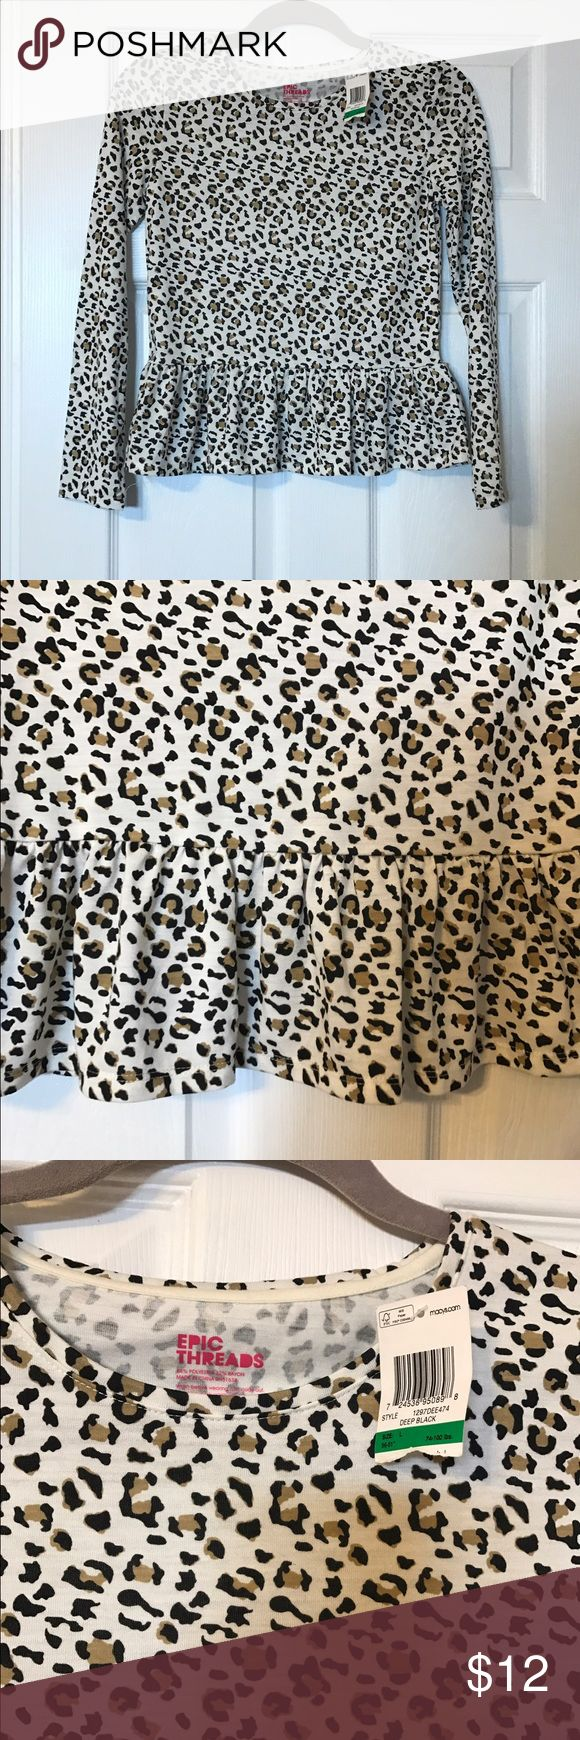 ❤️$10 sale❤️cheetah print peplum top Beautiful cheetah print top with ruffle on bottom - size large 10-12 Epic Threads Shirts & Tops Blouses